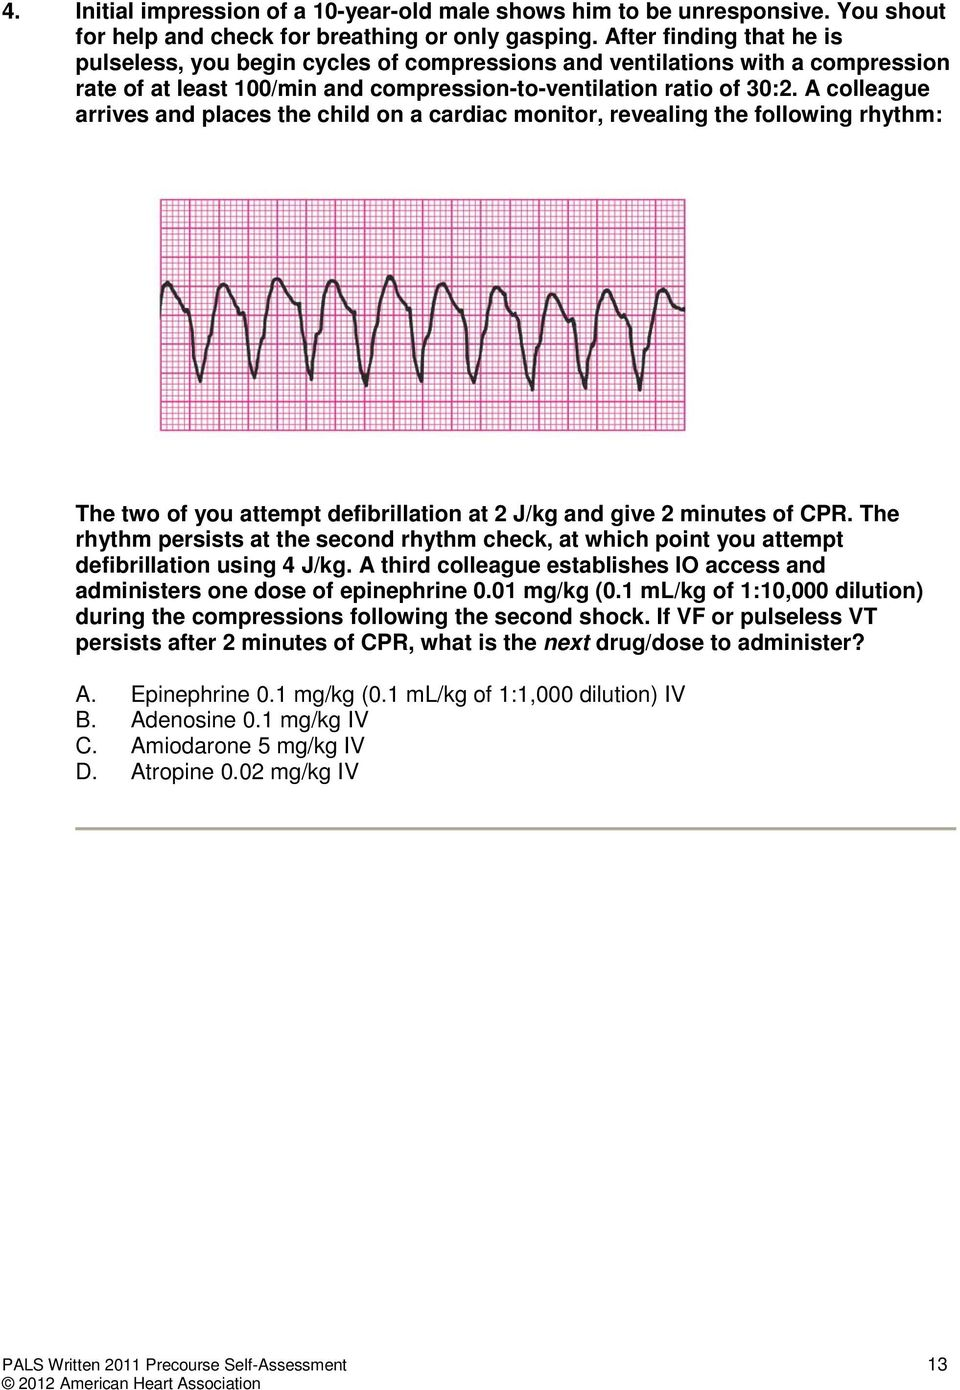 A colleague arrives and places the child on a cardiac monitor, revealing  the following rhythm